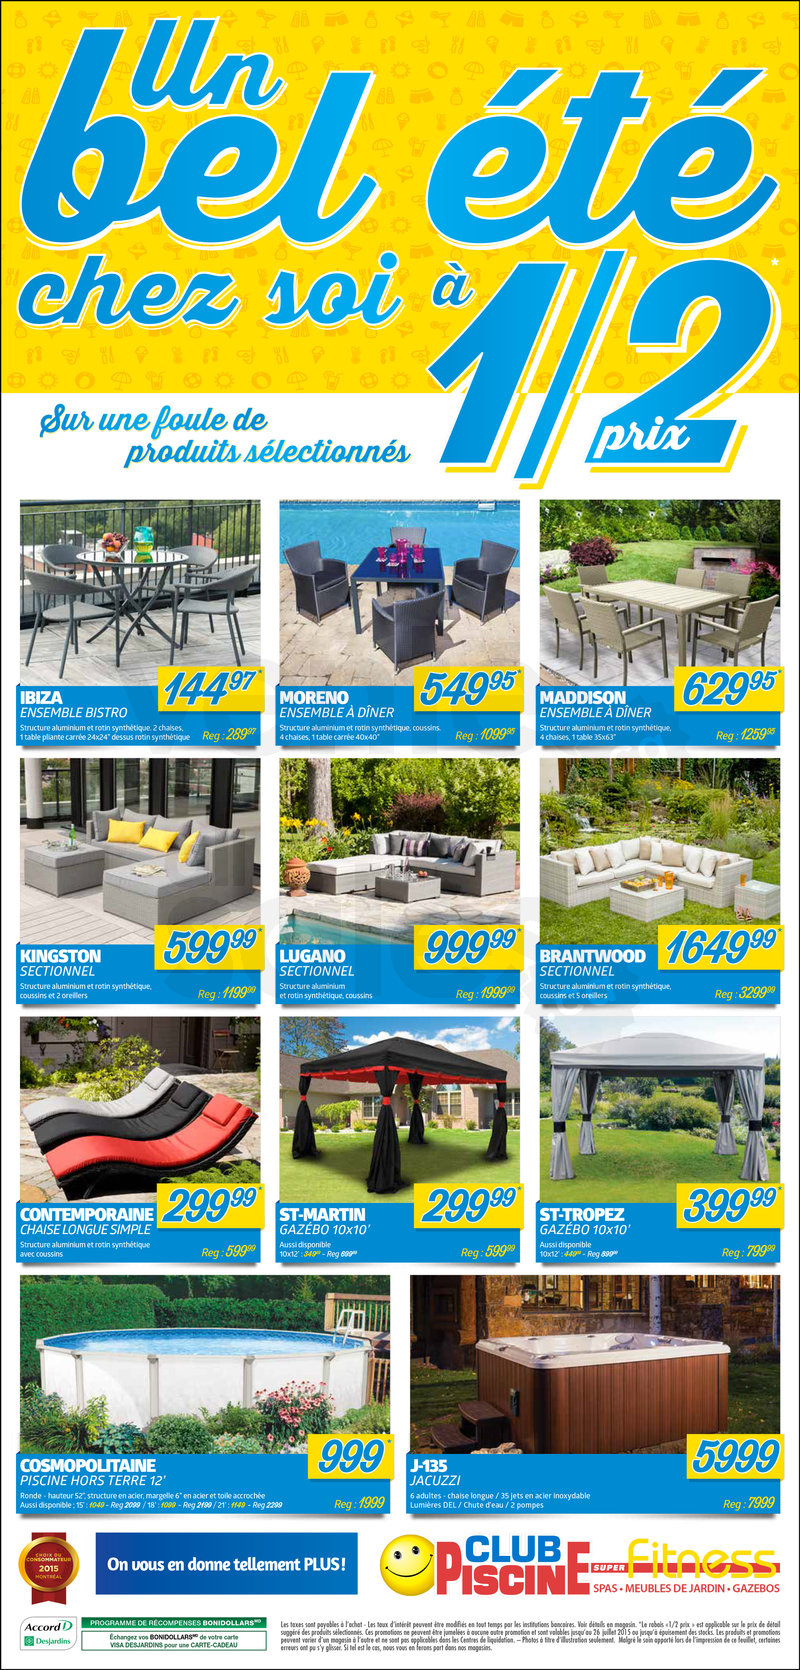 Club piscine 50 produits s lectionn s for Club piscine brossard quebec